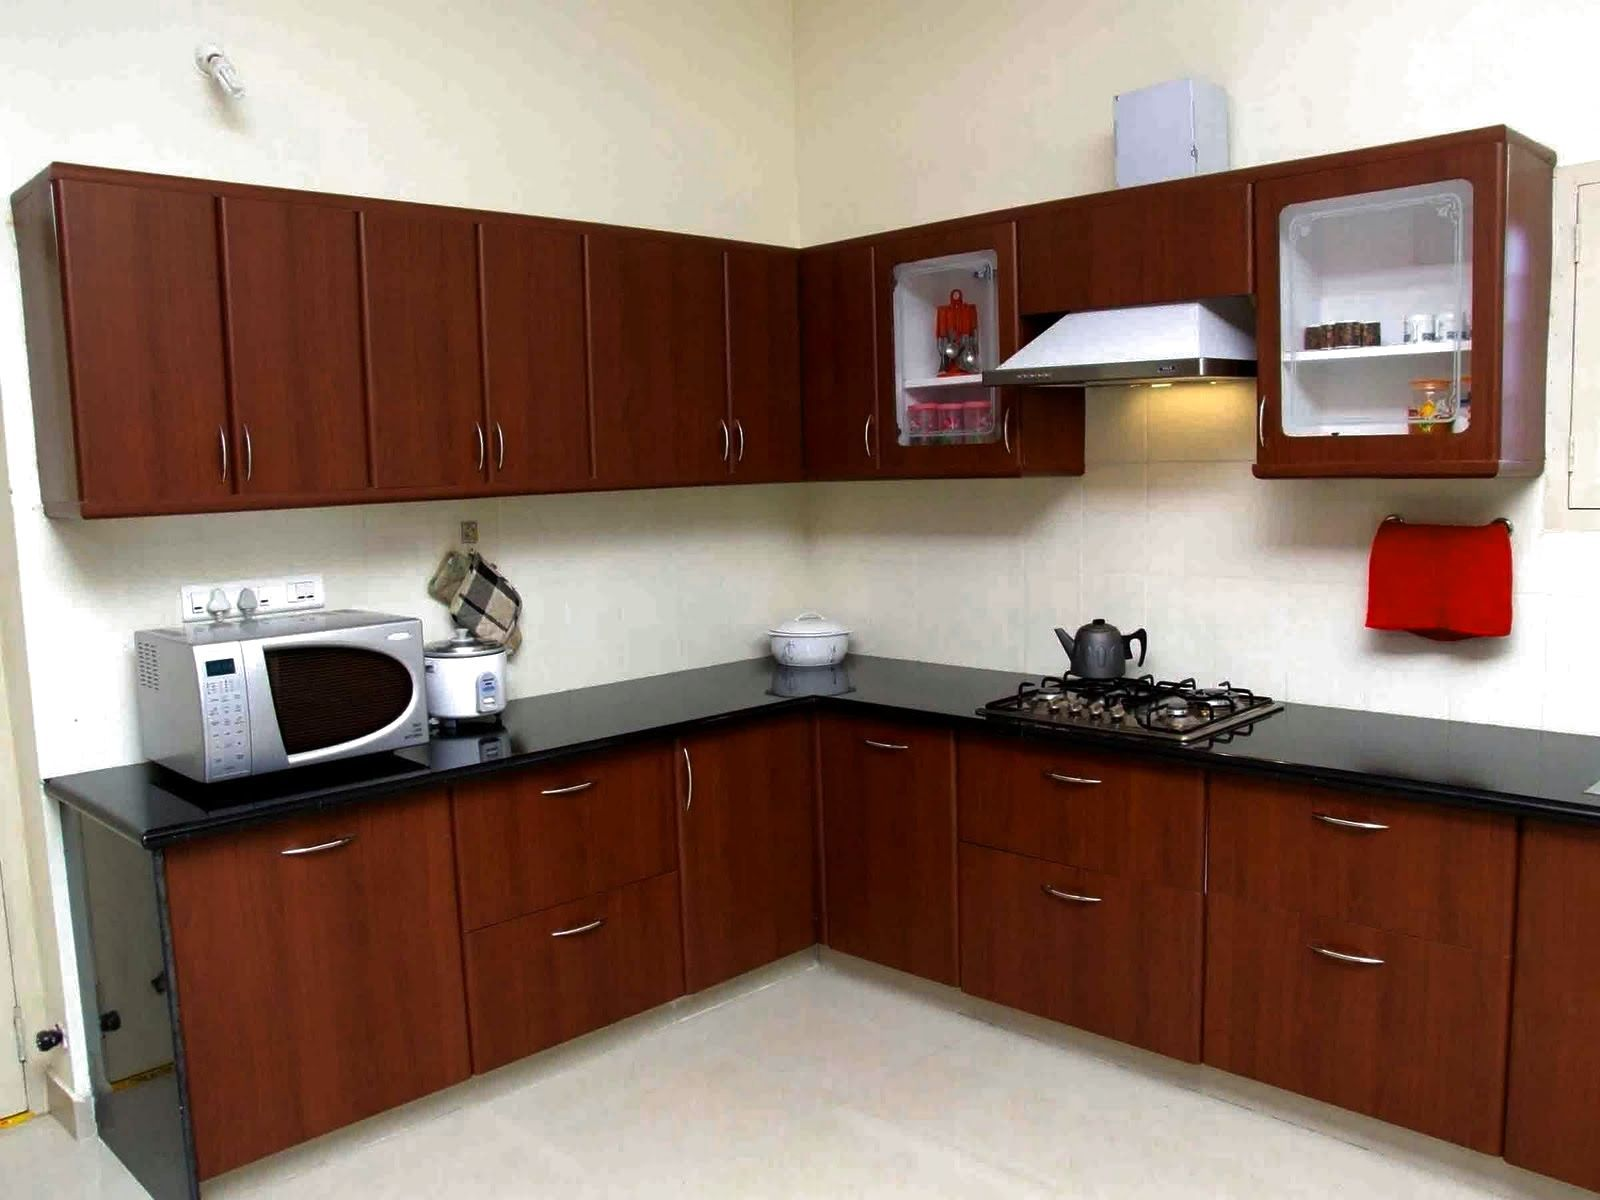 Design kitchen cabinets india ideas kitchen cabinet Kitchen cabinet designs